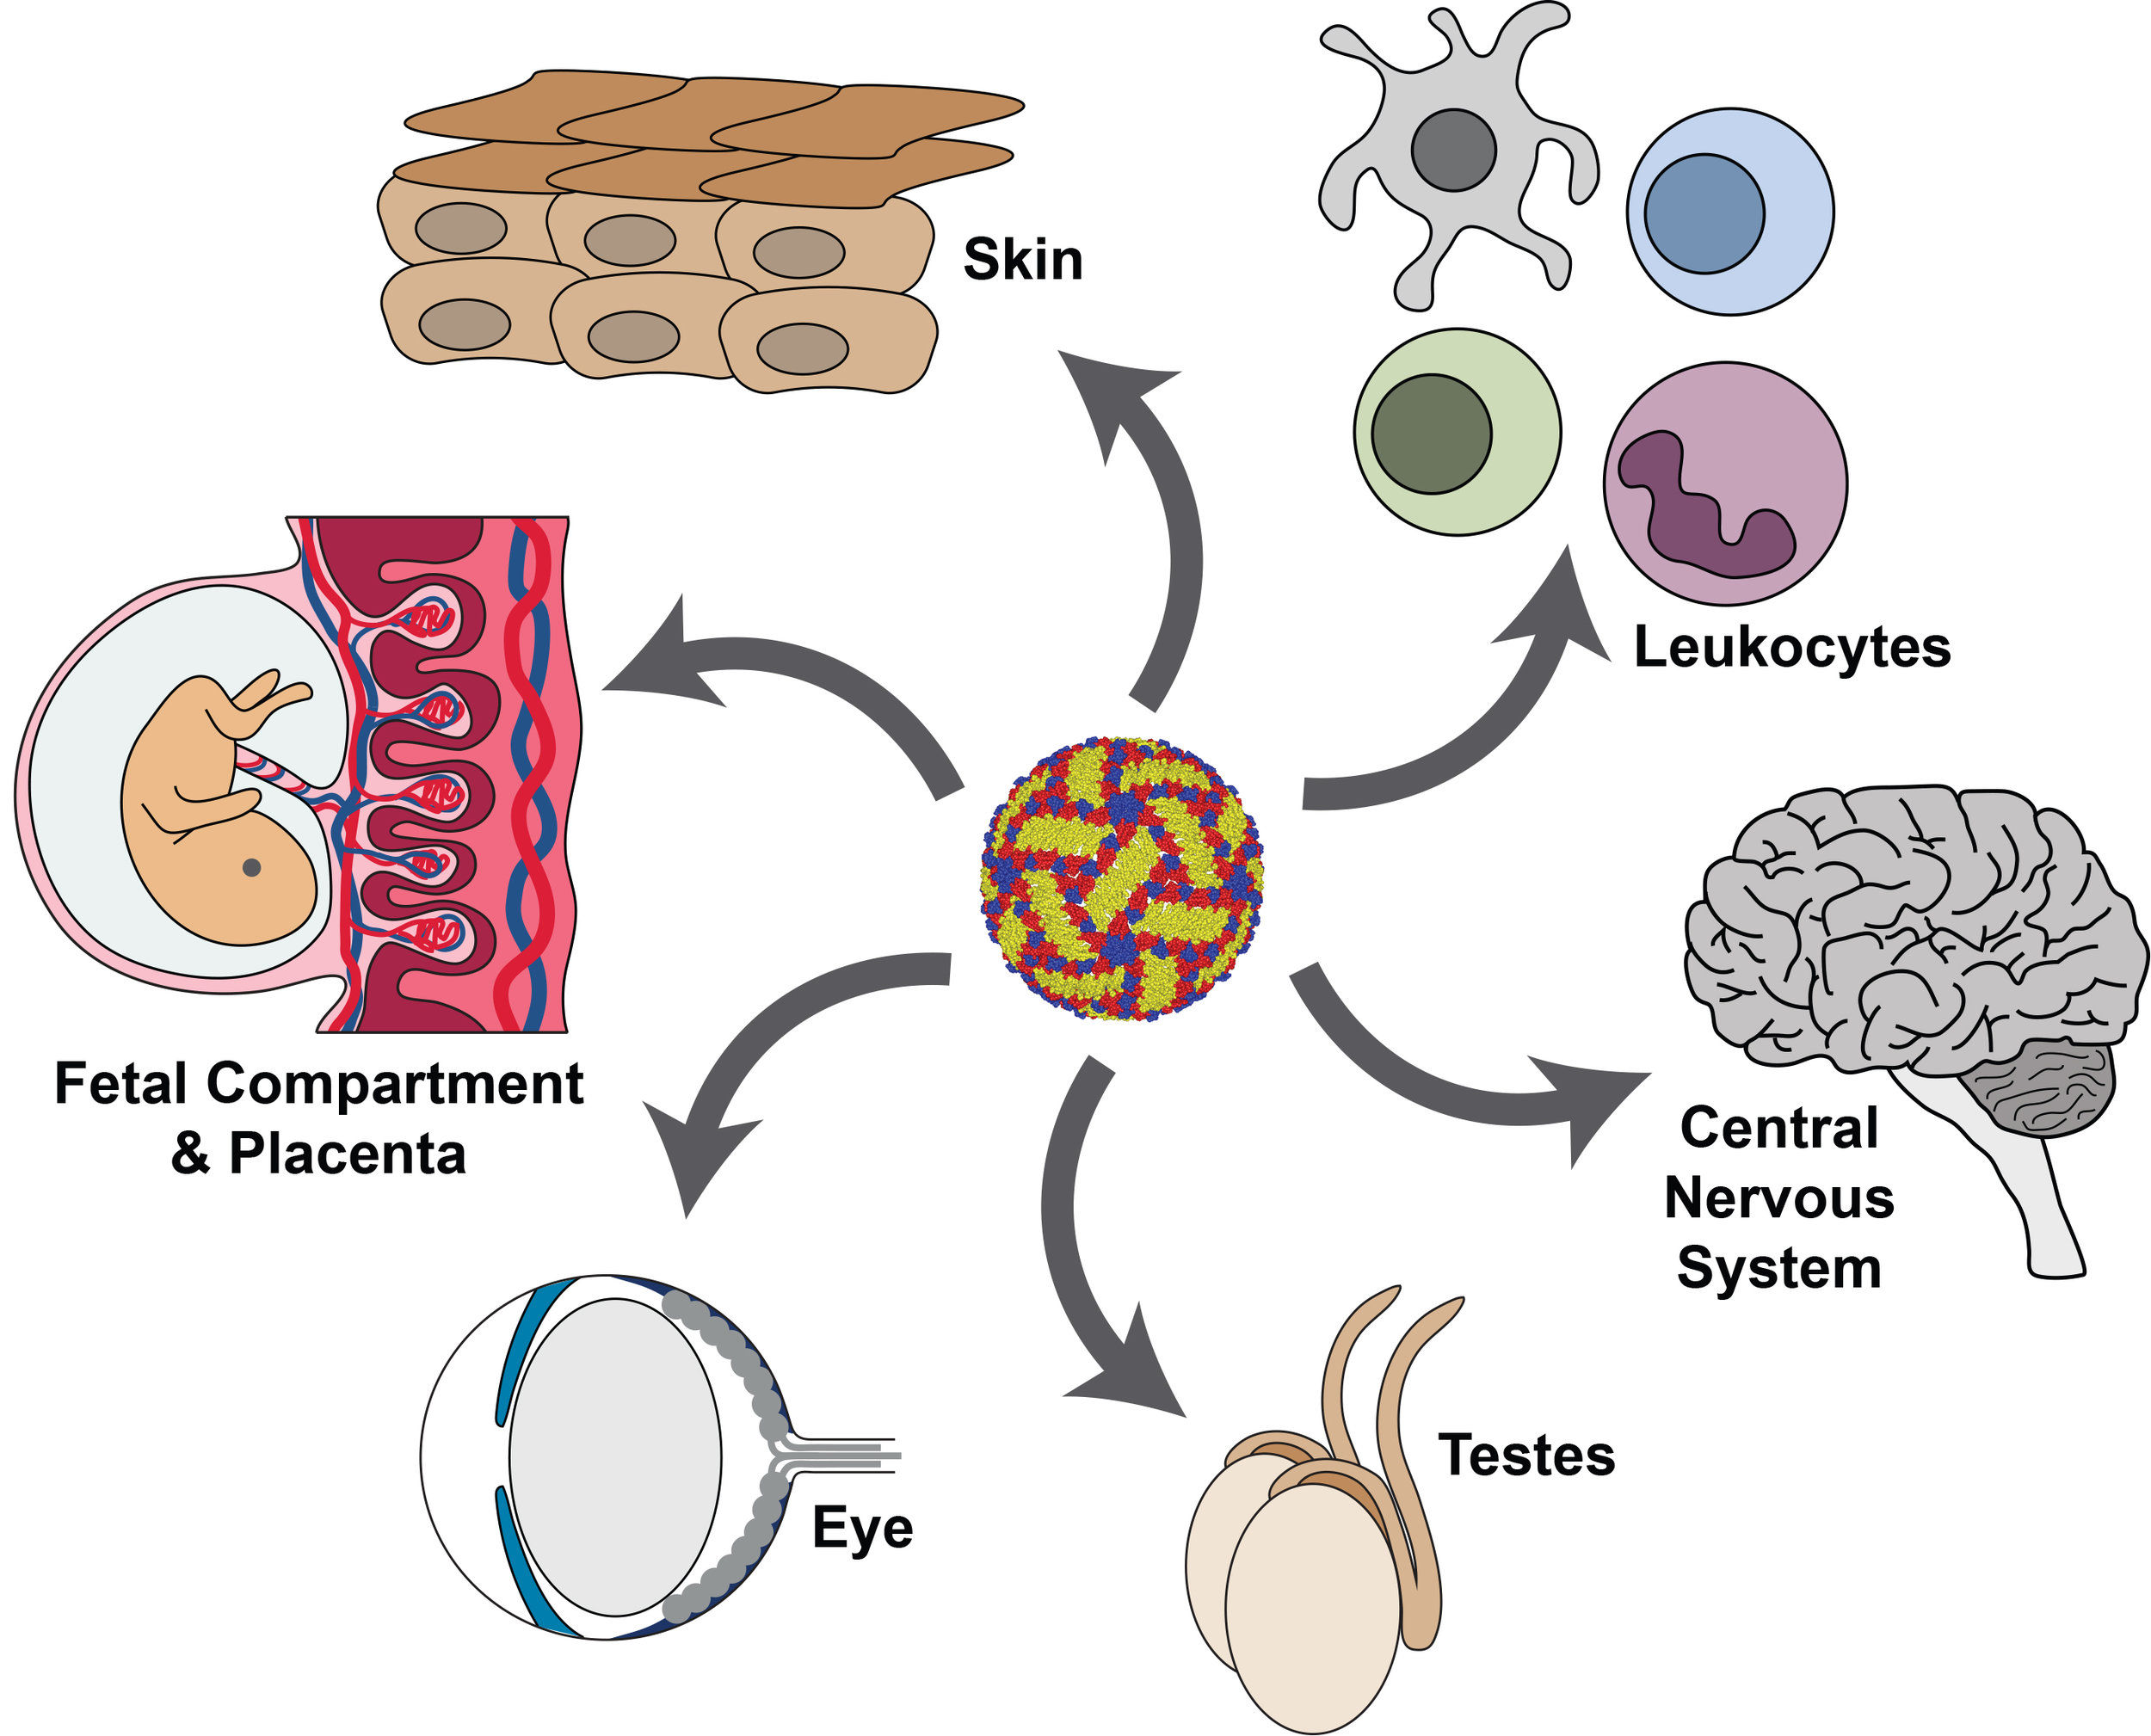 Flaviviruses infect a variety of tissues, some of which are protected by specialized bariers